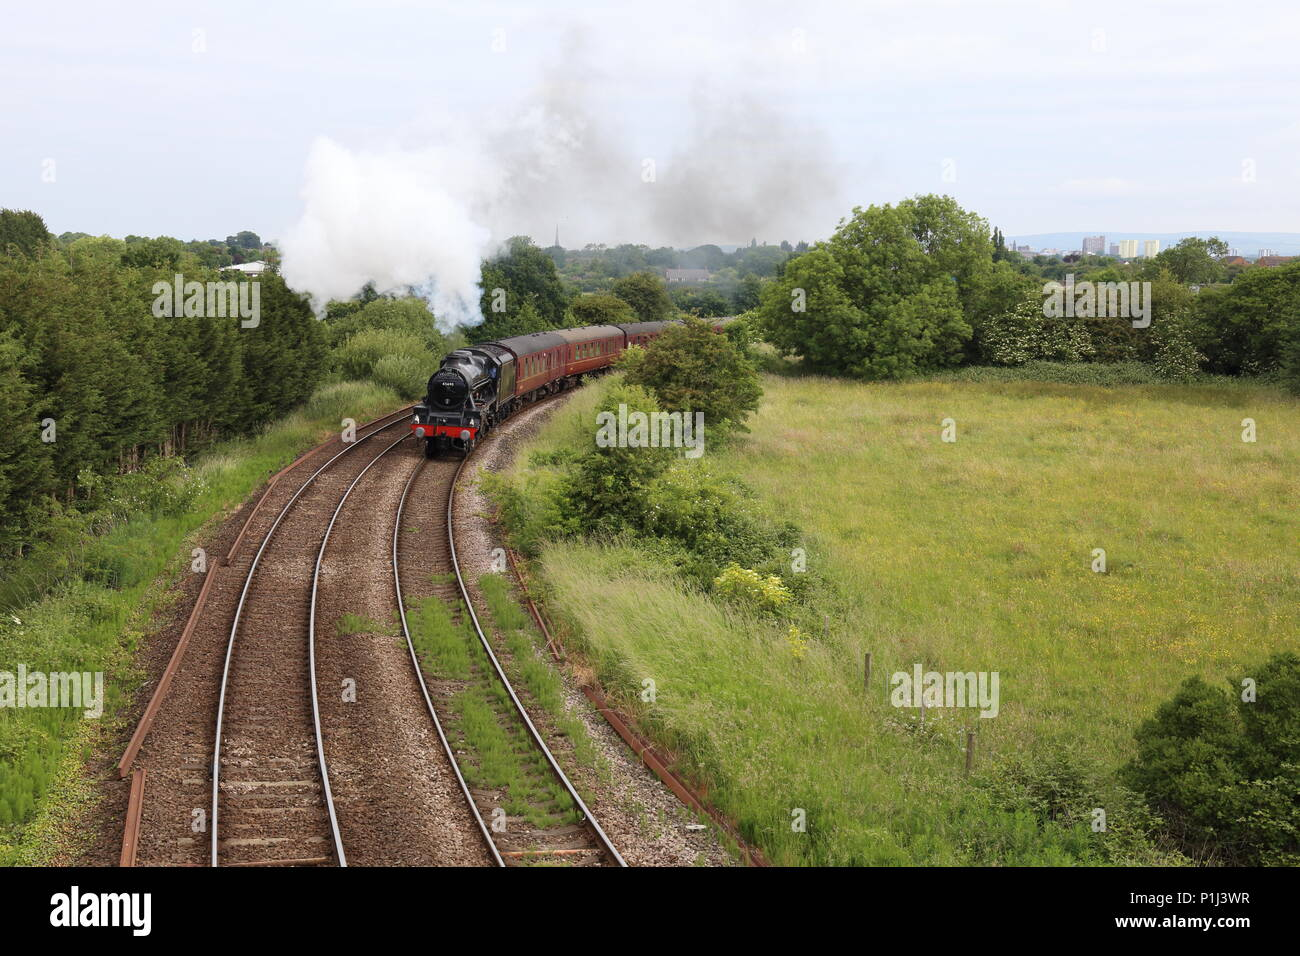 The Fellsman Steam Locomotive leads its carriages around the Farington Curve on its trip up the Settle Carlisle railway trough Lancashire countryside. - Stock Image